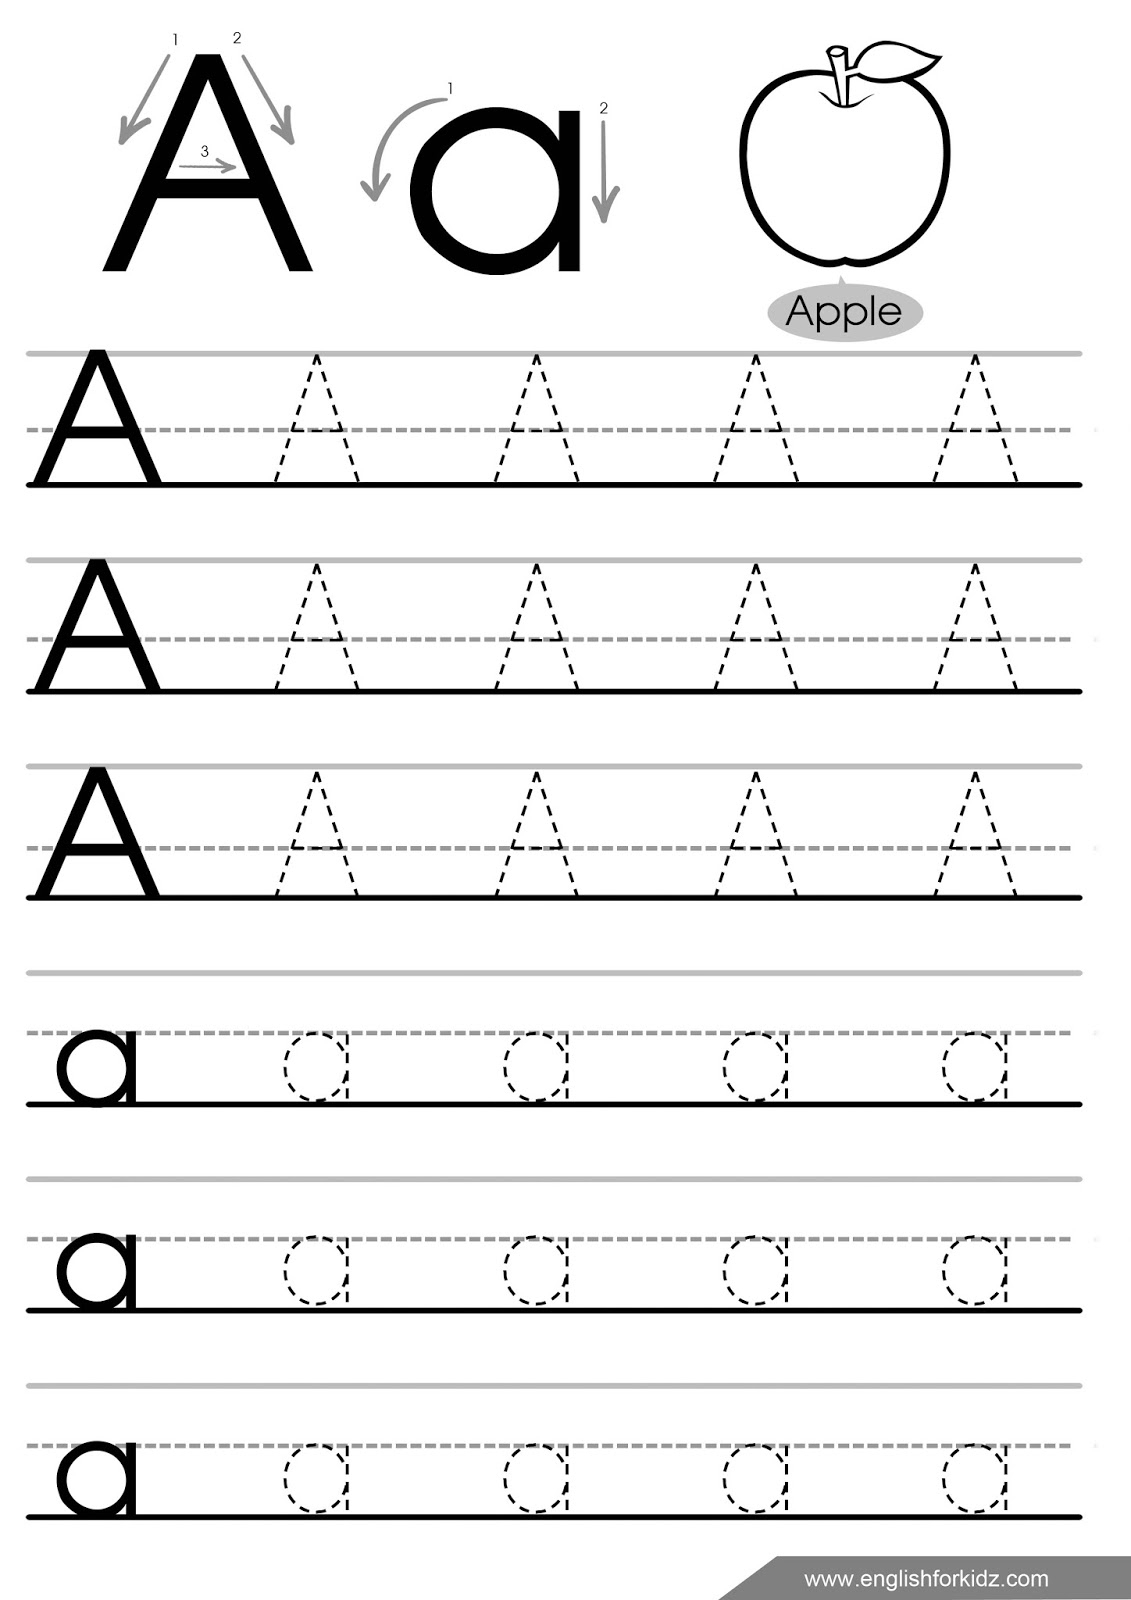 Coloring Book : Coloring Book Letter Tracing Worksheets intended for Tracing Letter A Worksheets Printable